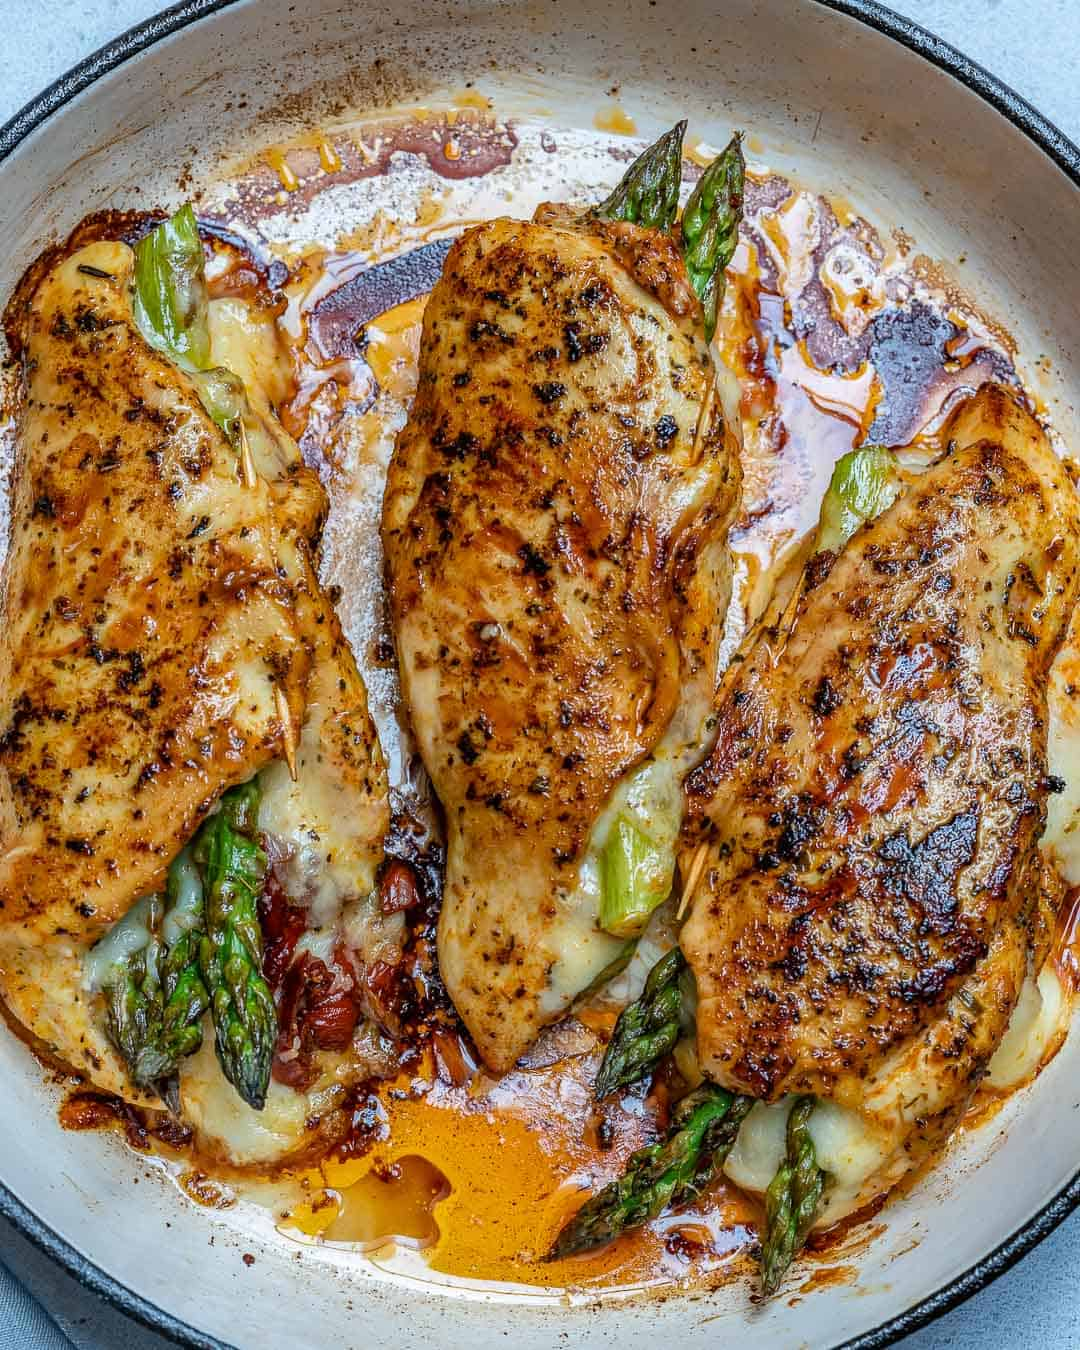 stuffed chicken with asparagus and sun-dried tomatoes